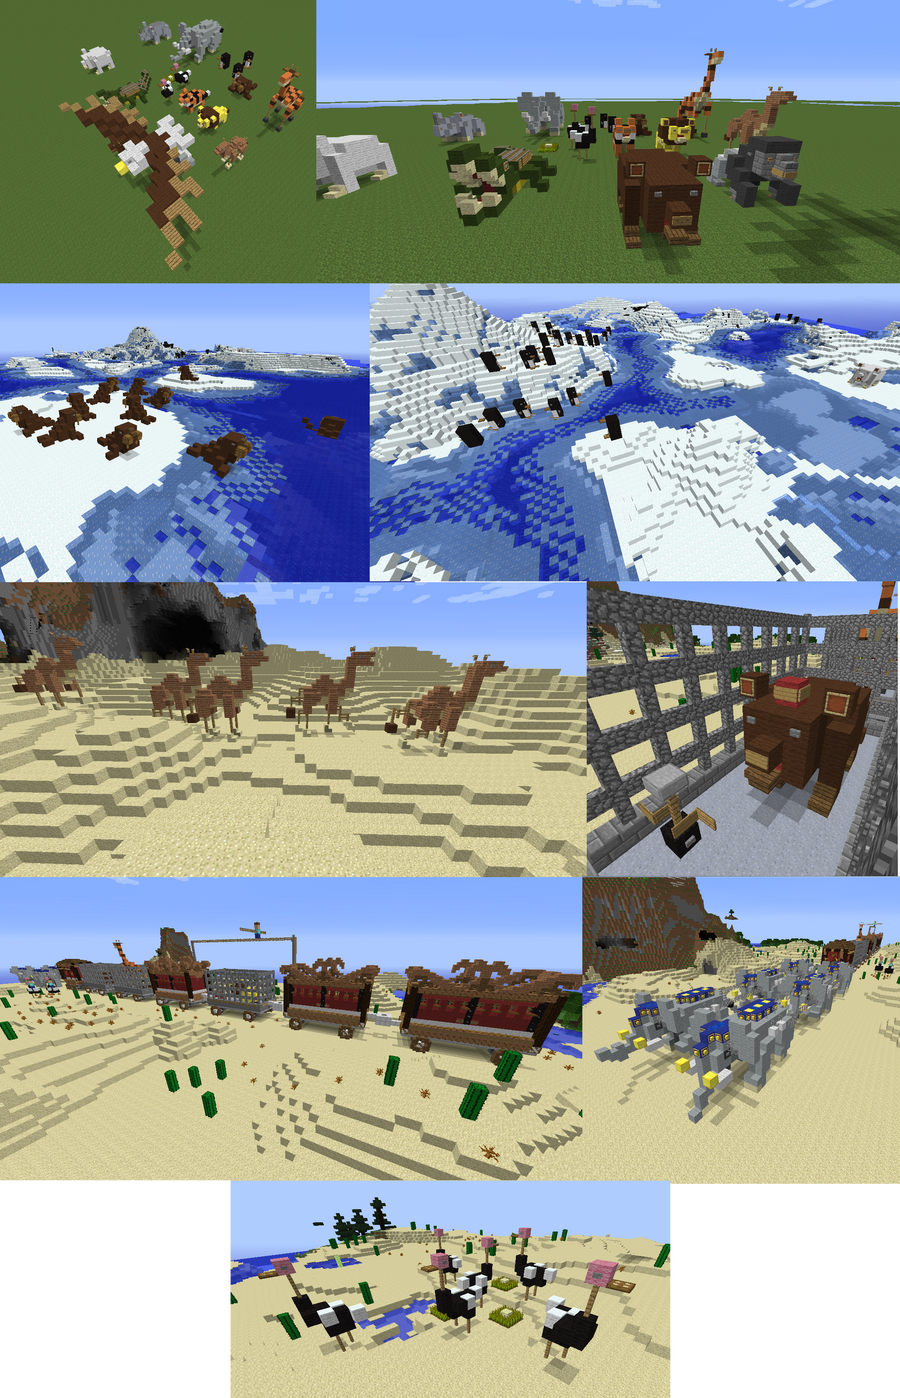 Minecraft Map Decorations: Animals by lunchbox1234